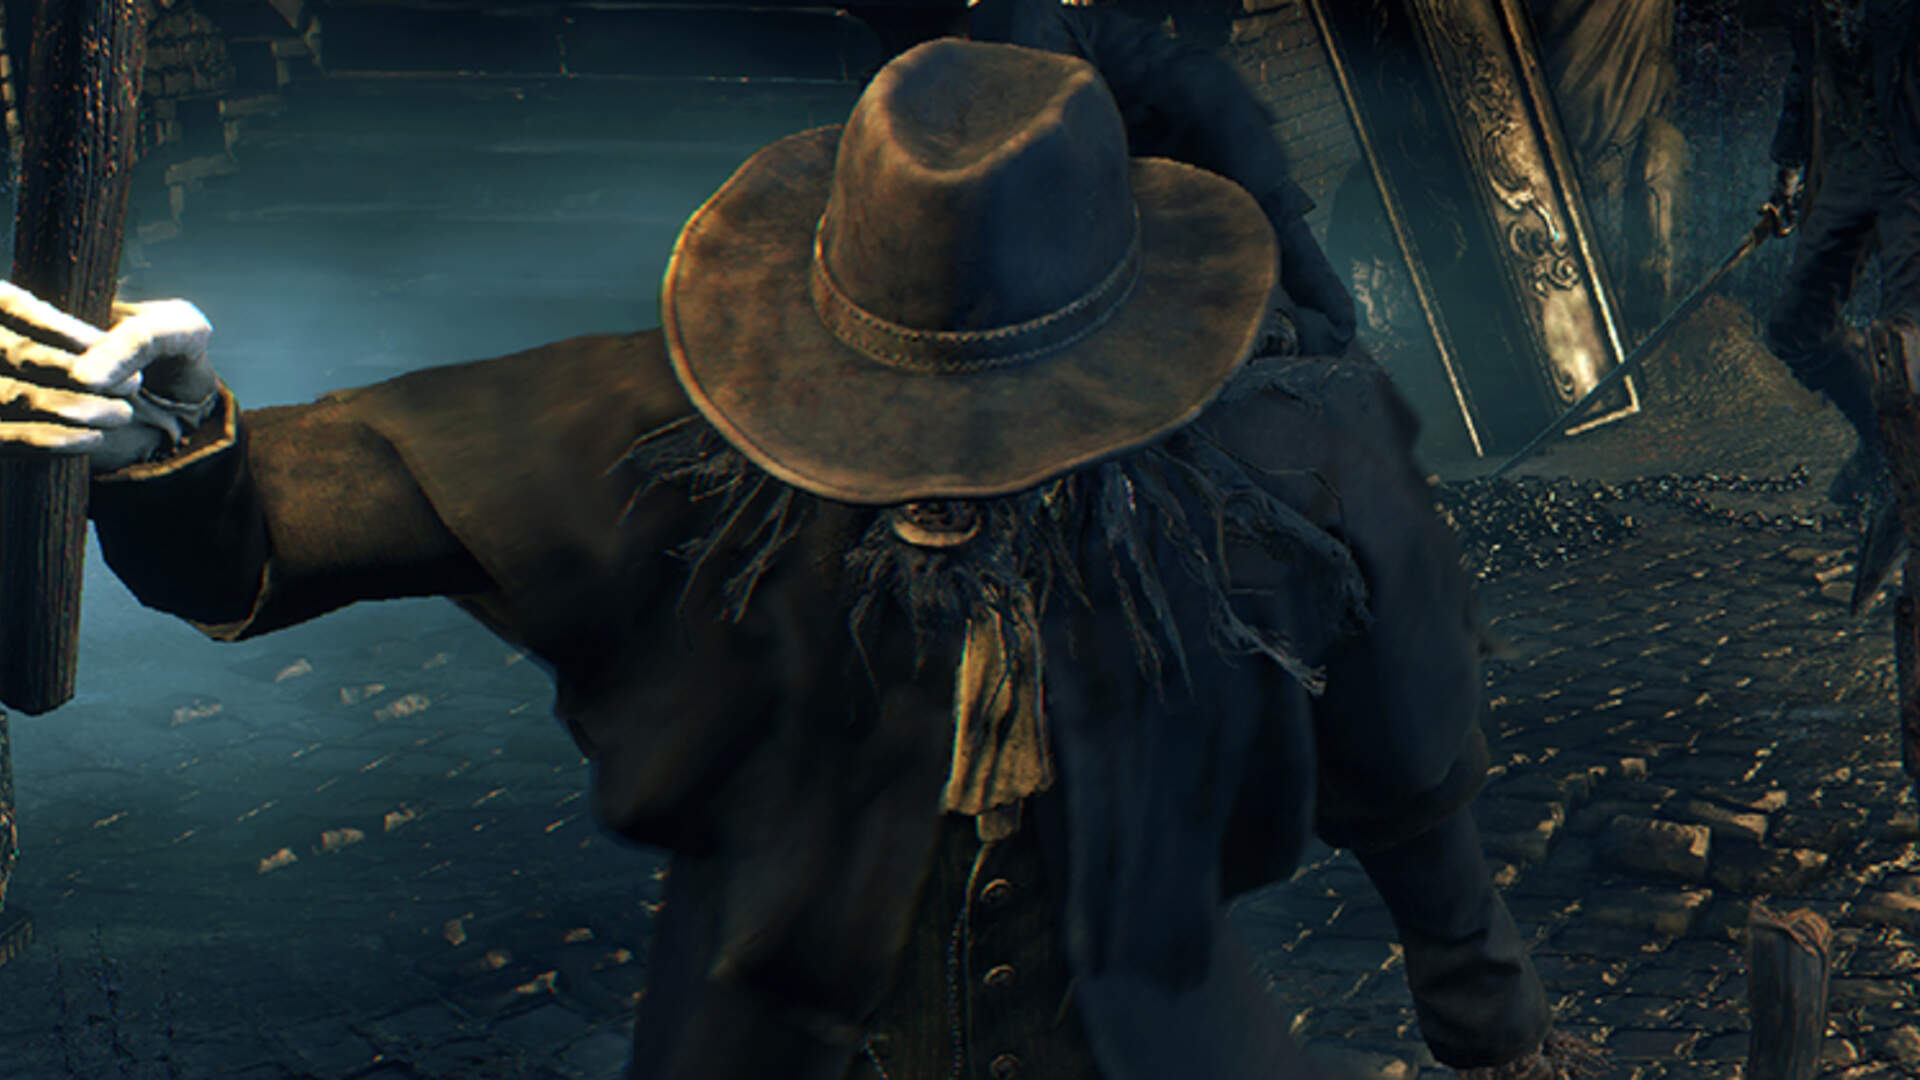 Bloodborne Gehrman Boss Guide - How to Defeat the First Hunter, How to Find the Blood Rock